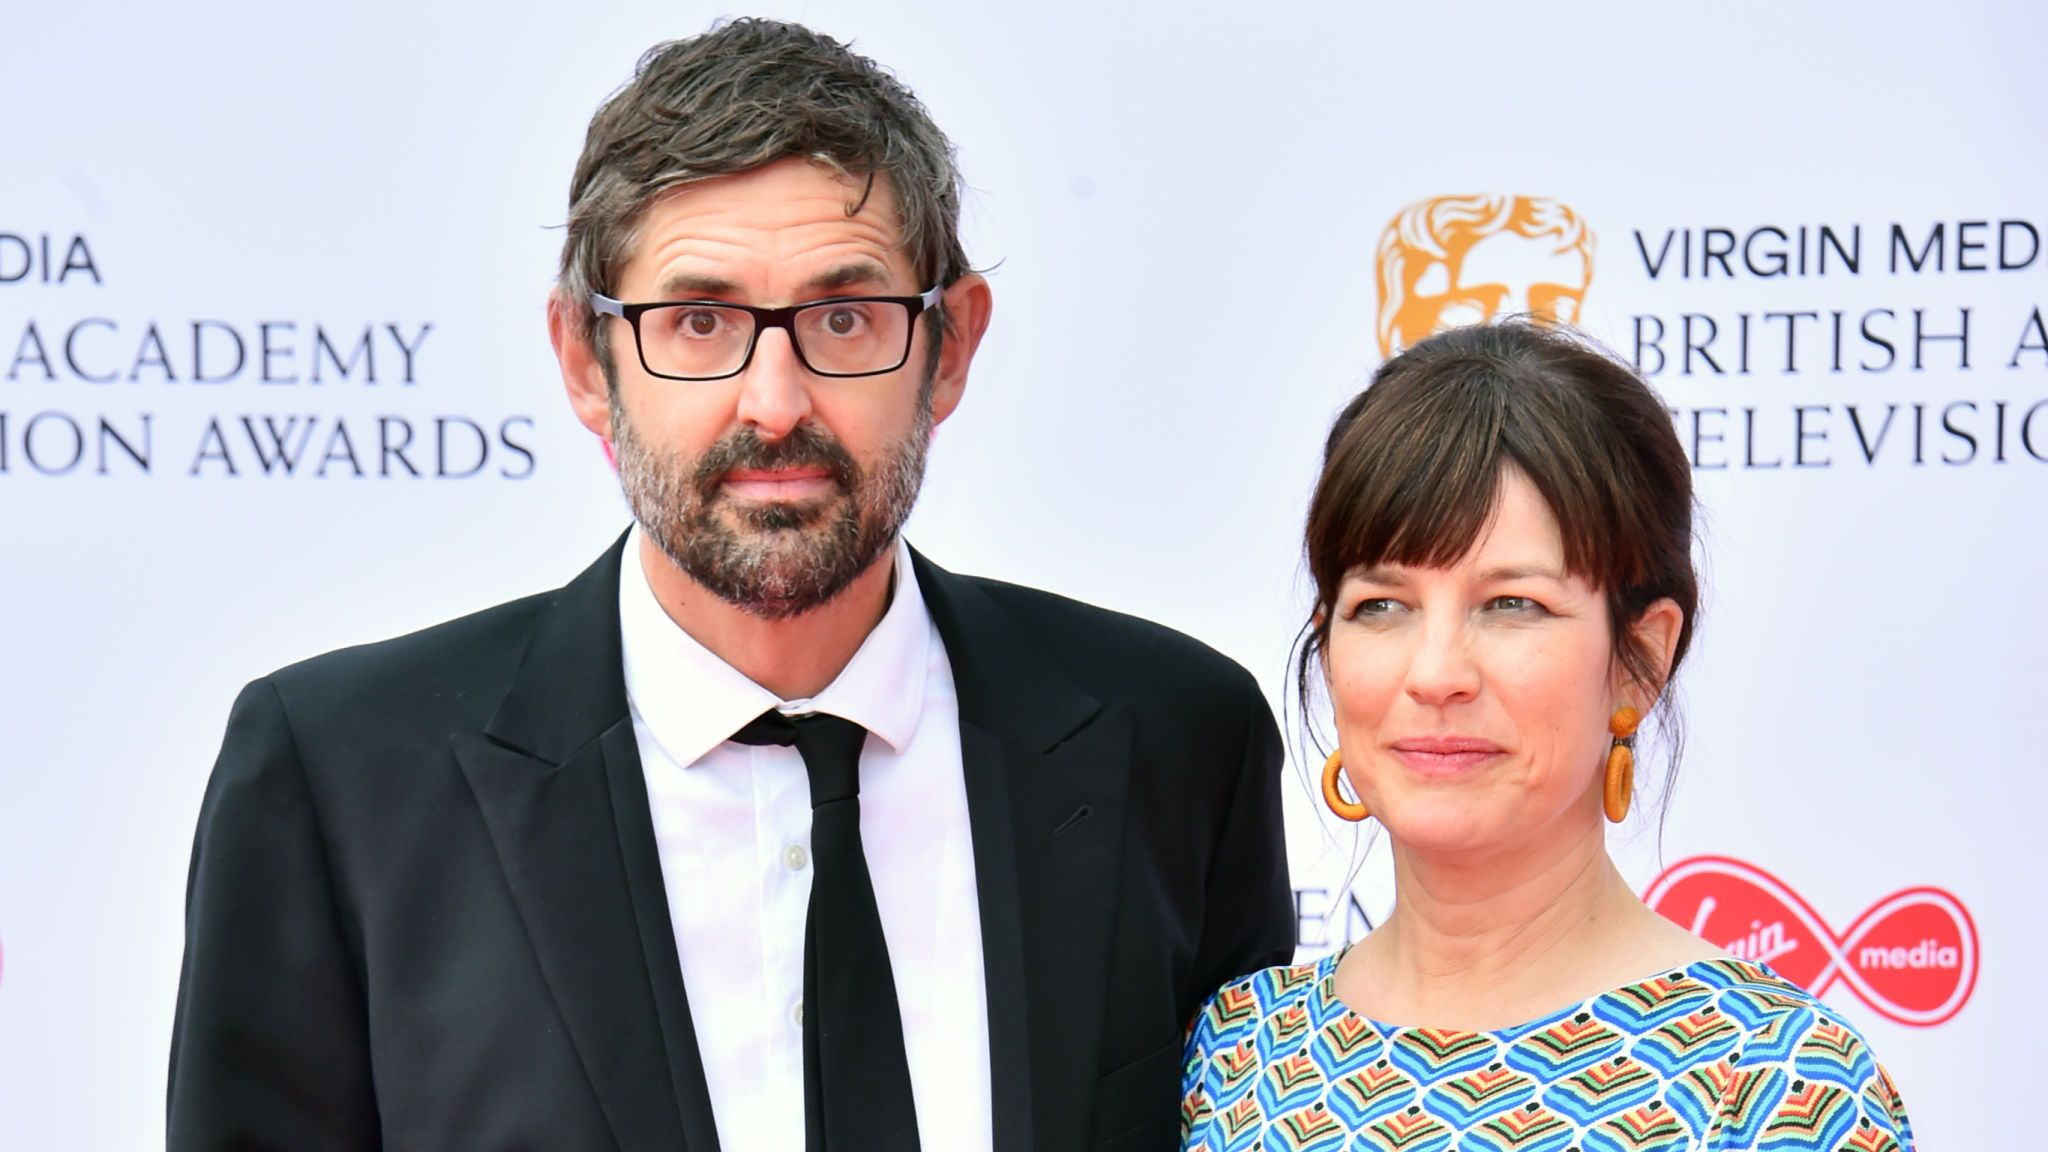 Louis Theroux and Nancy Strang attending the Virgin Media BAFTA TV awards, held at the Royal Festival Hall in London